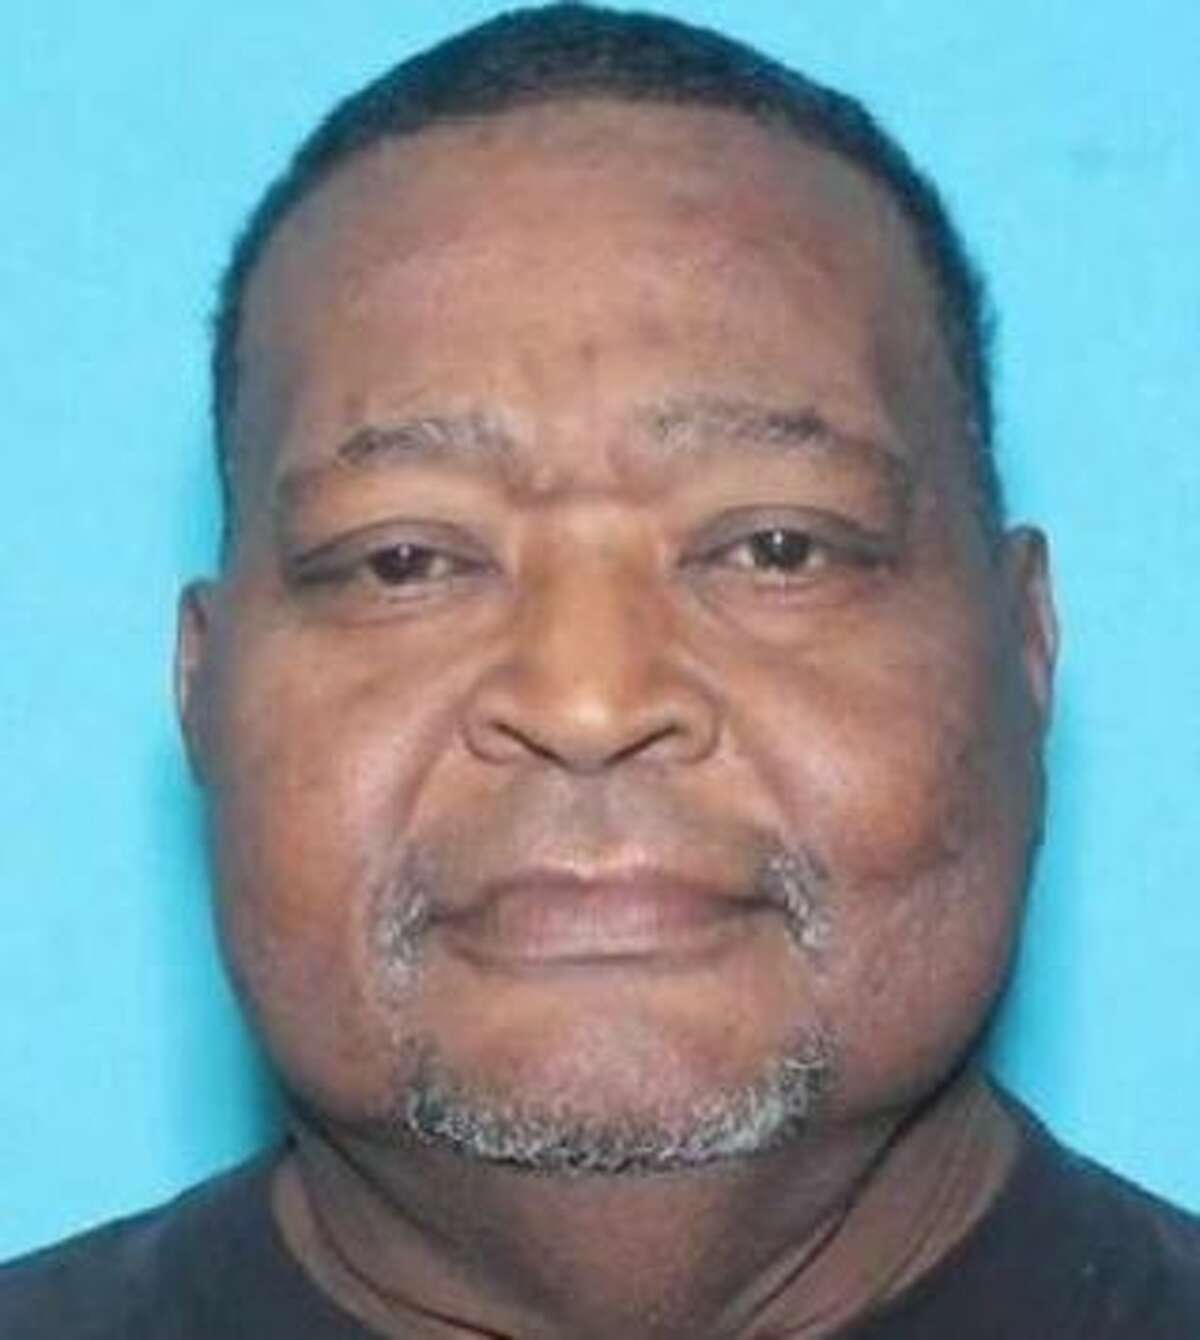 John Jackson had been missing since last Friday when he was found dead Monday in southwest Houston, according to his wife and Texas EquuSearch.